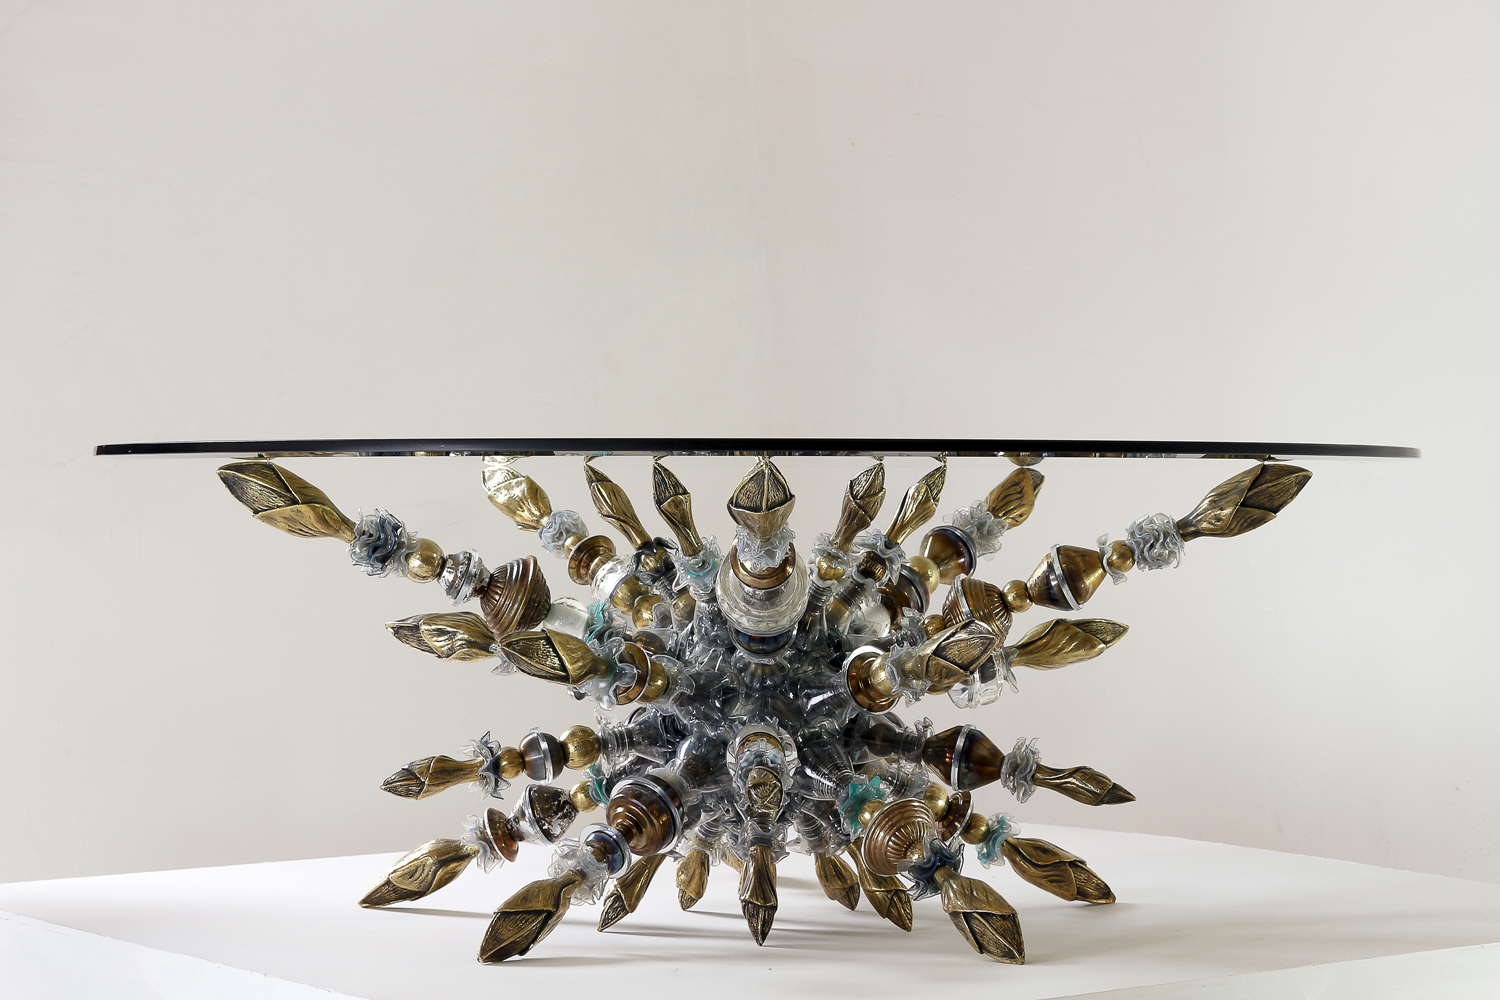 web222-thierry-jeannot-coffeetable-sideview-bronze-plastics-wood-marion-friedmann-gallery.jpg